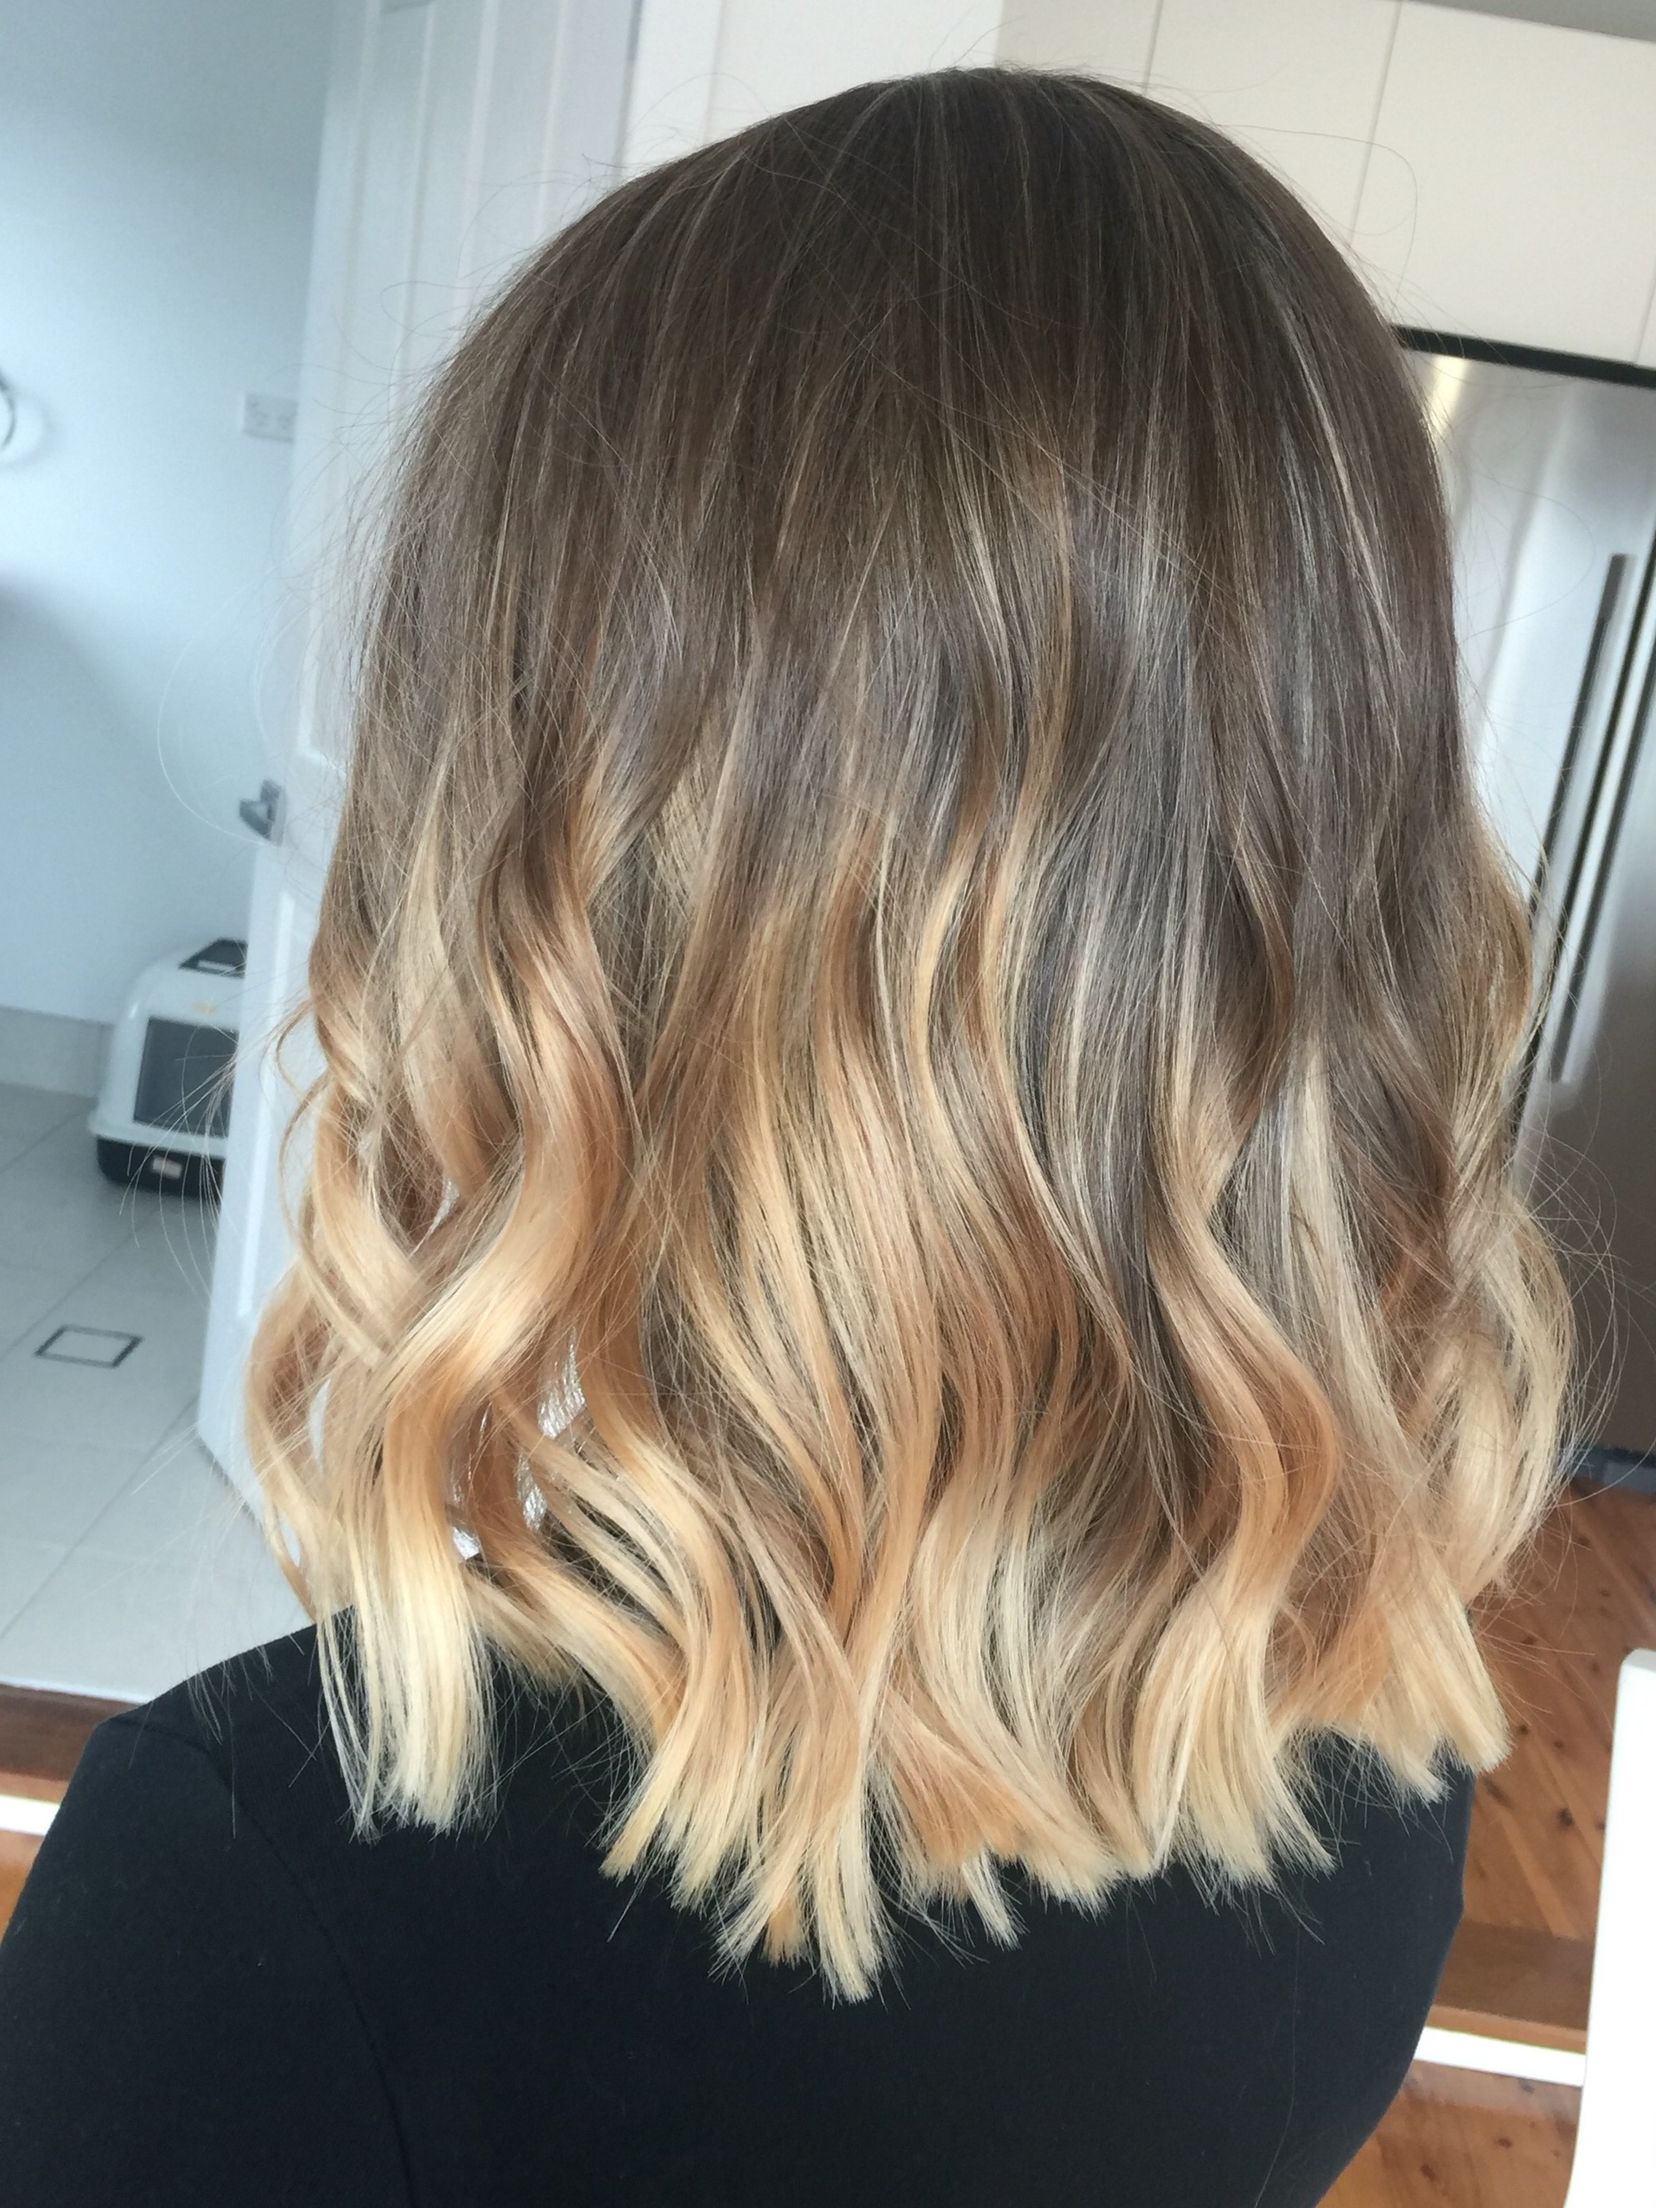 2018 Dishwater Blonde Hairstyles With Face Frame With Lived In Hair Colour Blonde Brunette Golden Tones Balayage Face (View 9 of 20)